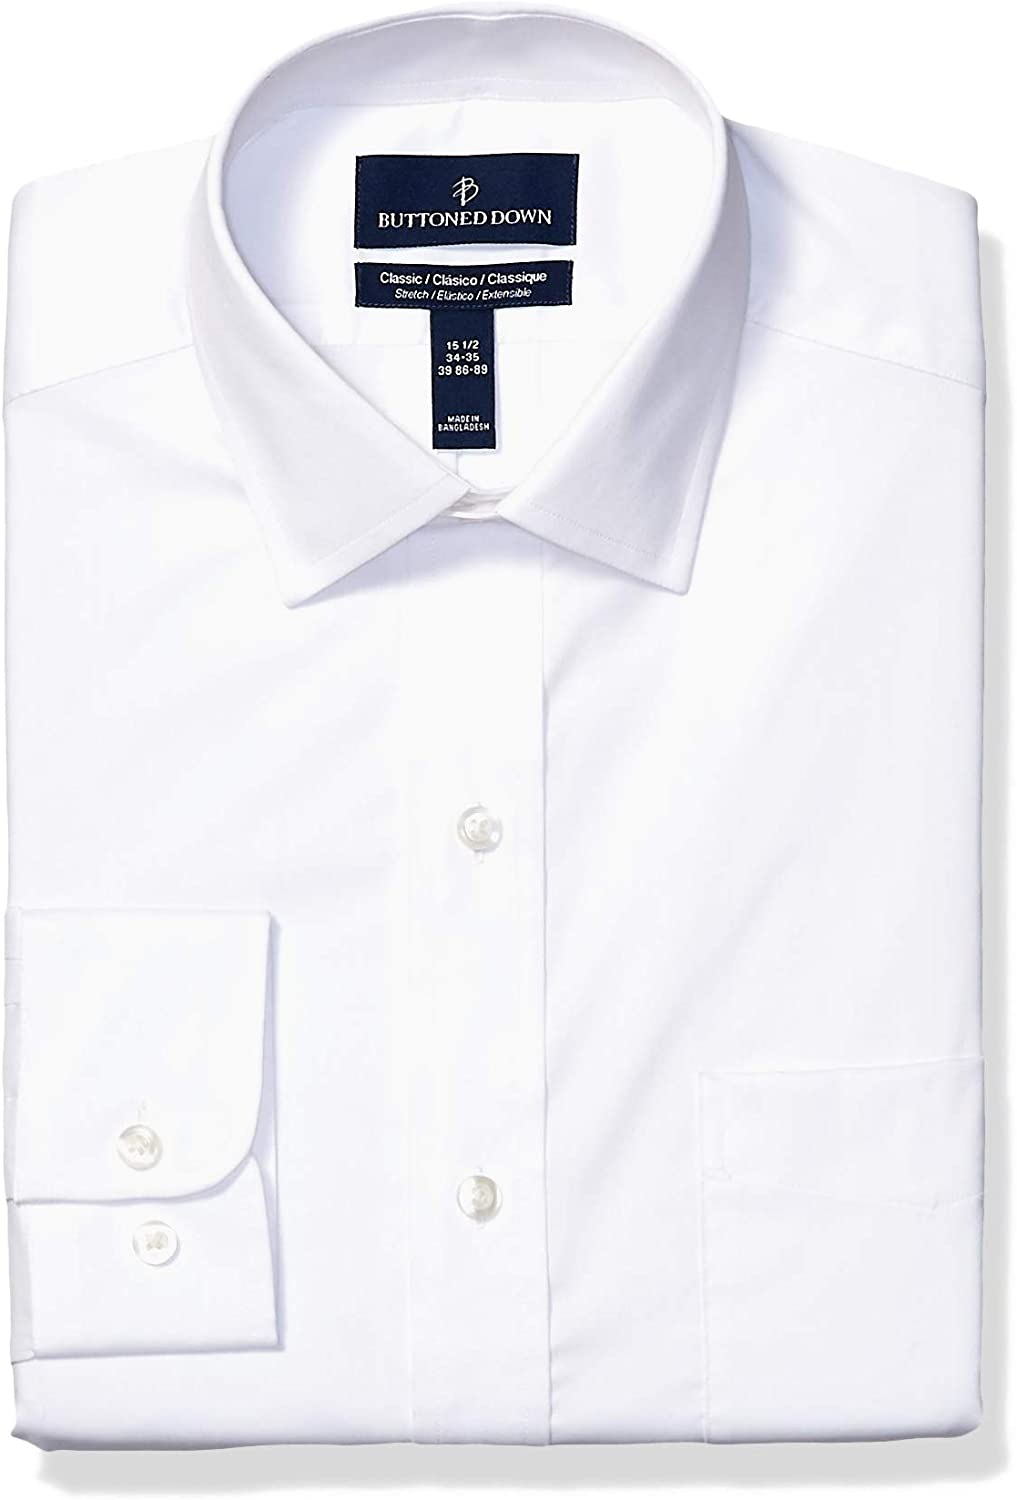 Amazon Brand - Buttoned Down Men's Classic Fit Performance Tech Stretch Dress Shirt, Supima Cotton Easy Care